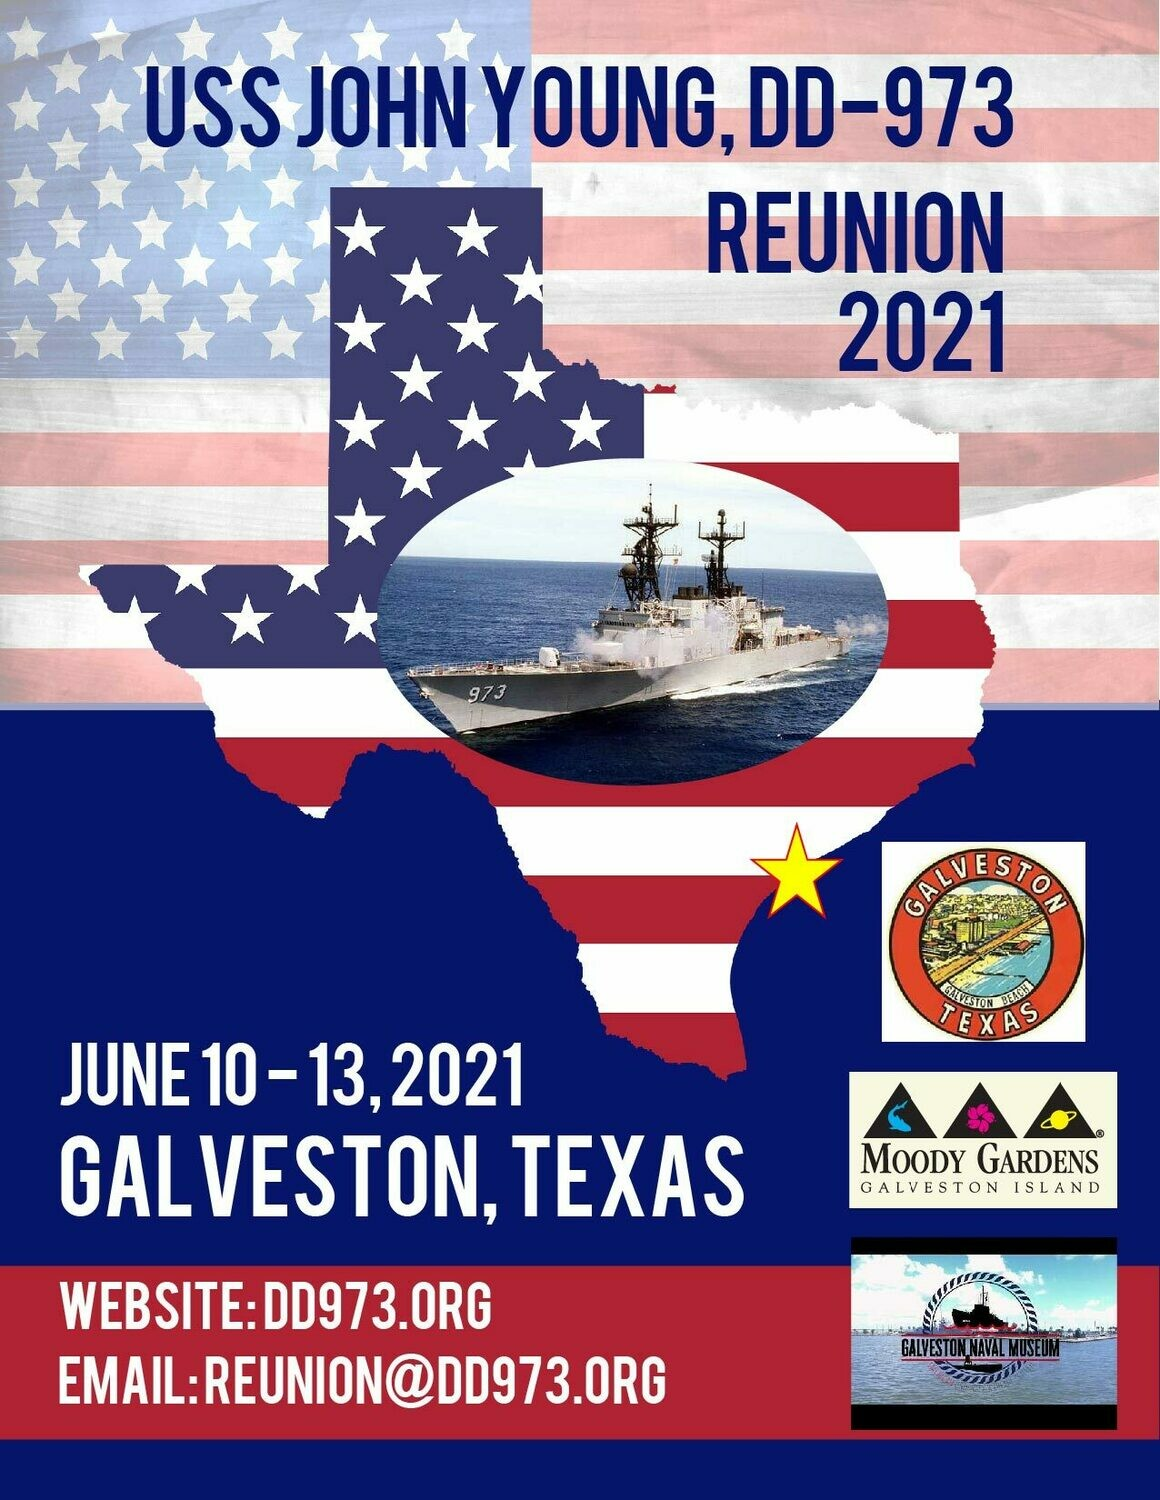 REUNION RSVP (Youth 16 and under)